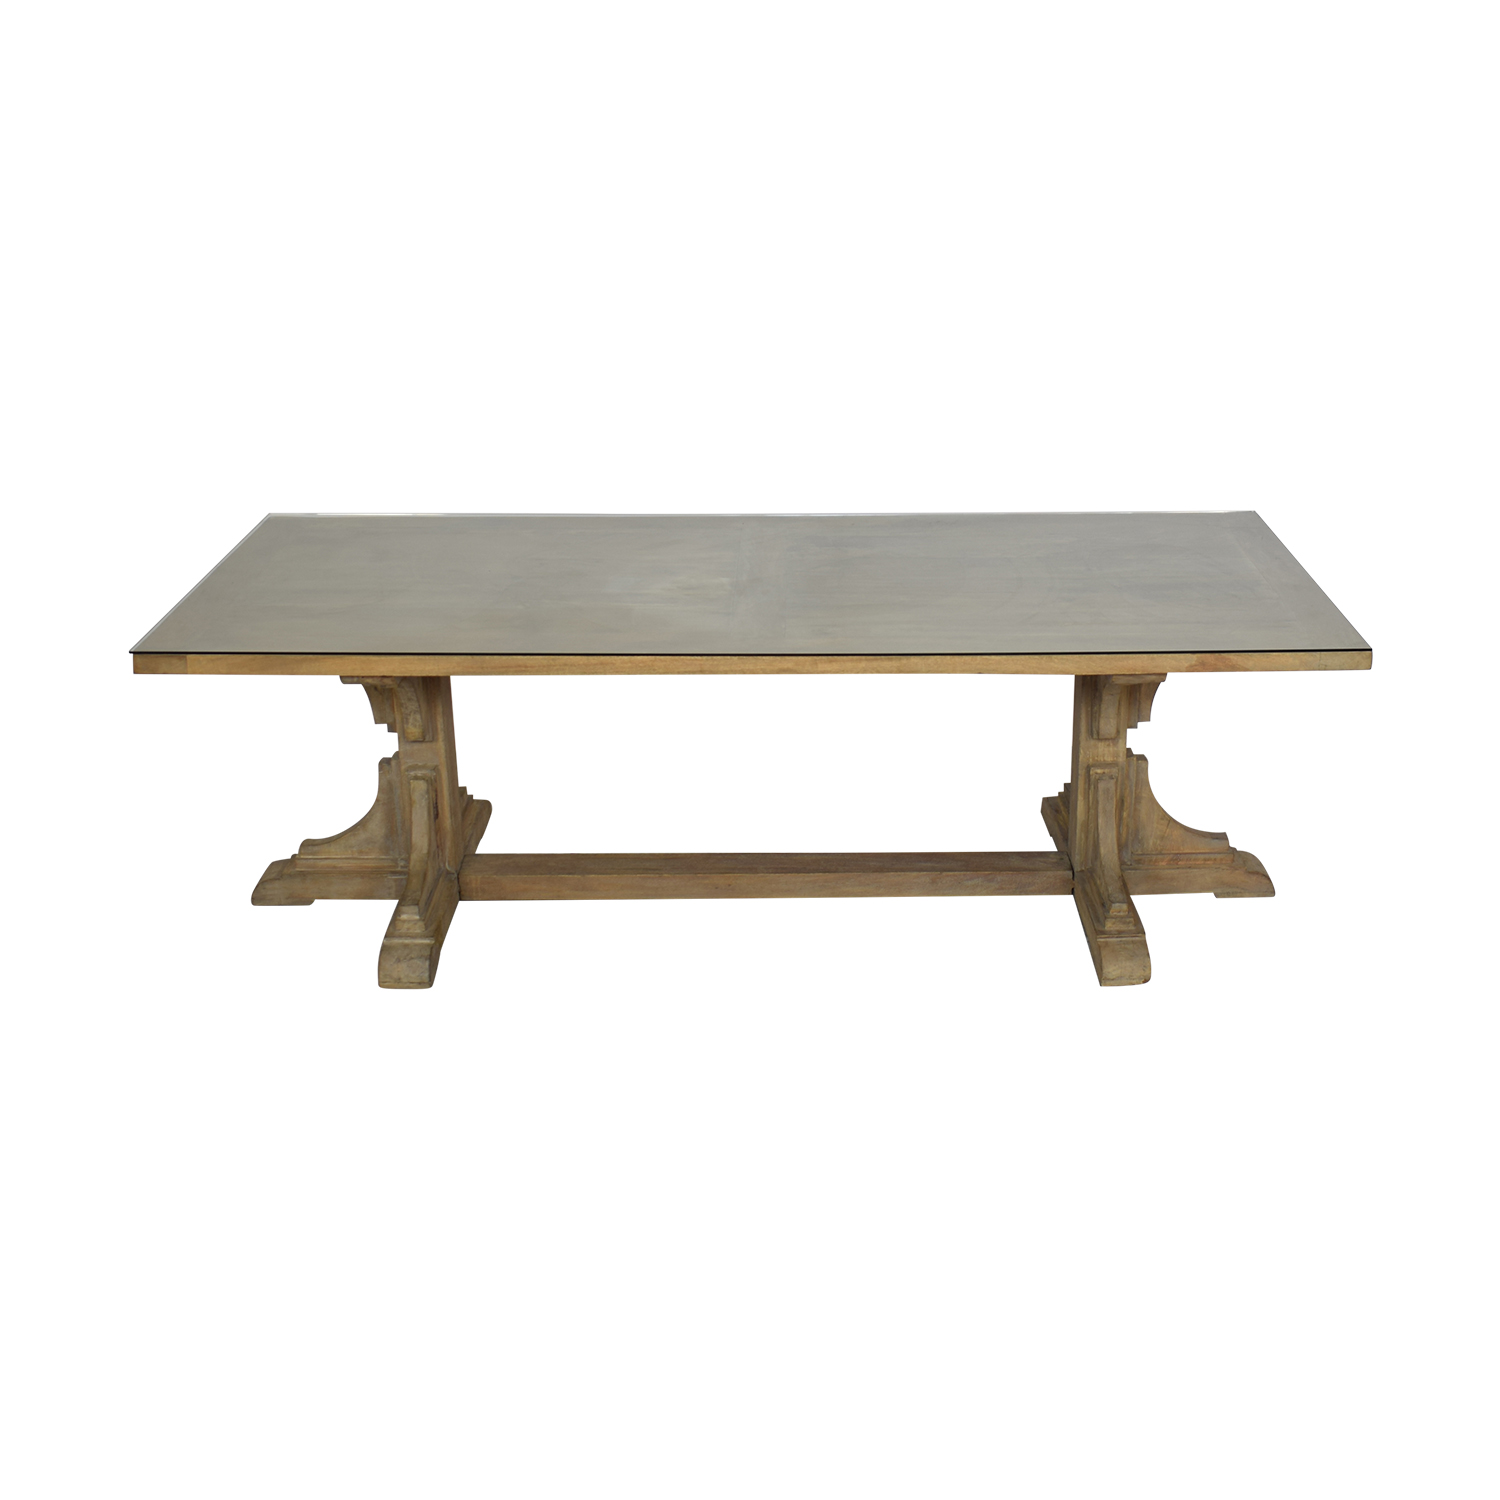 Handmade French Bracket Mango Wood Dining Table with Custom Glass Top for sale